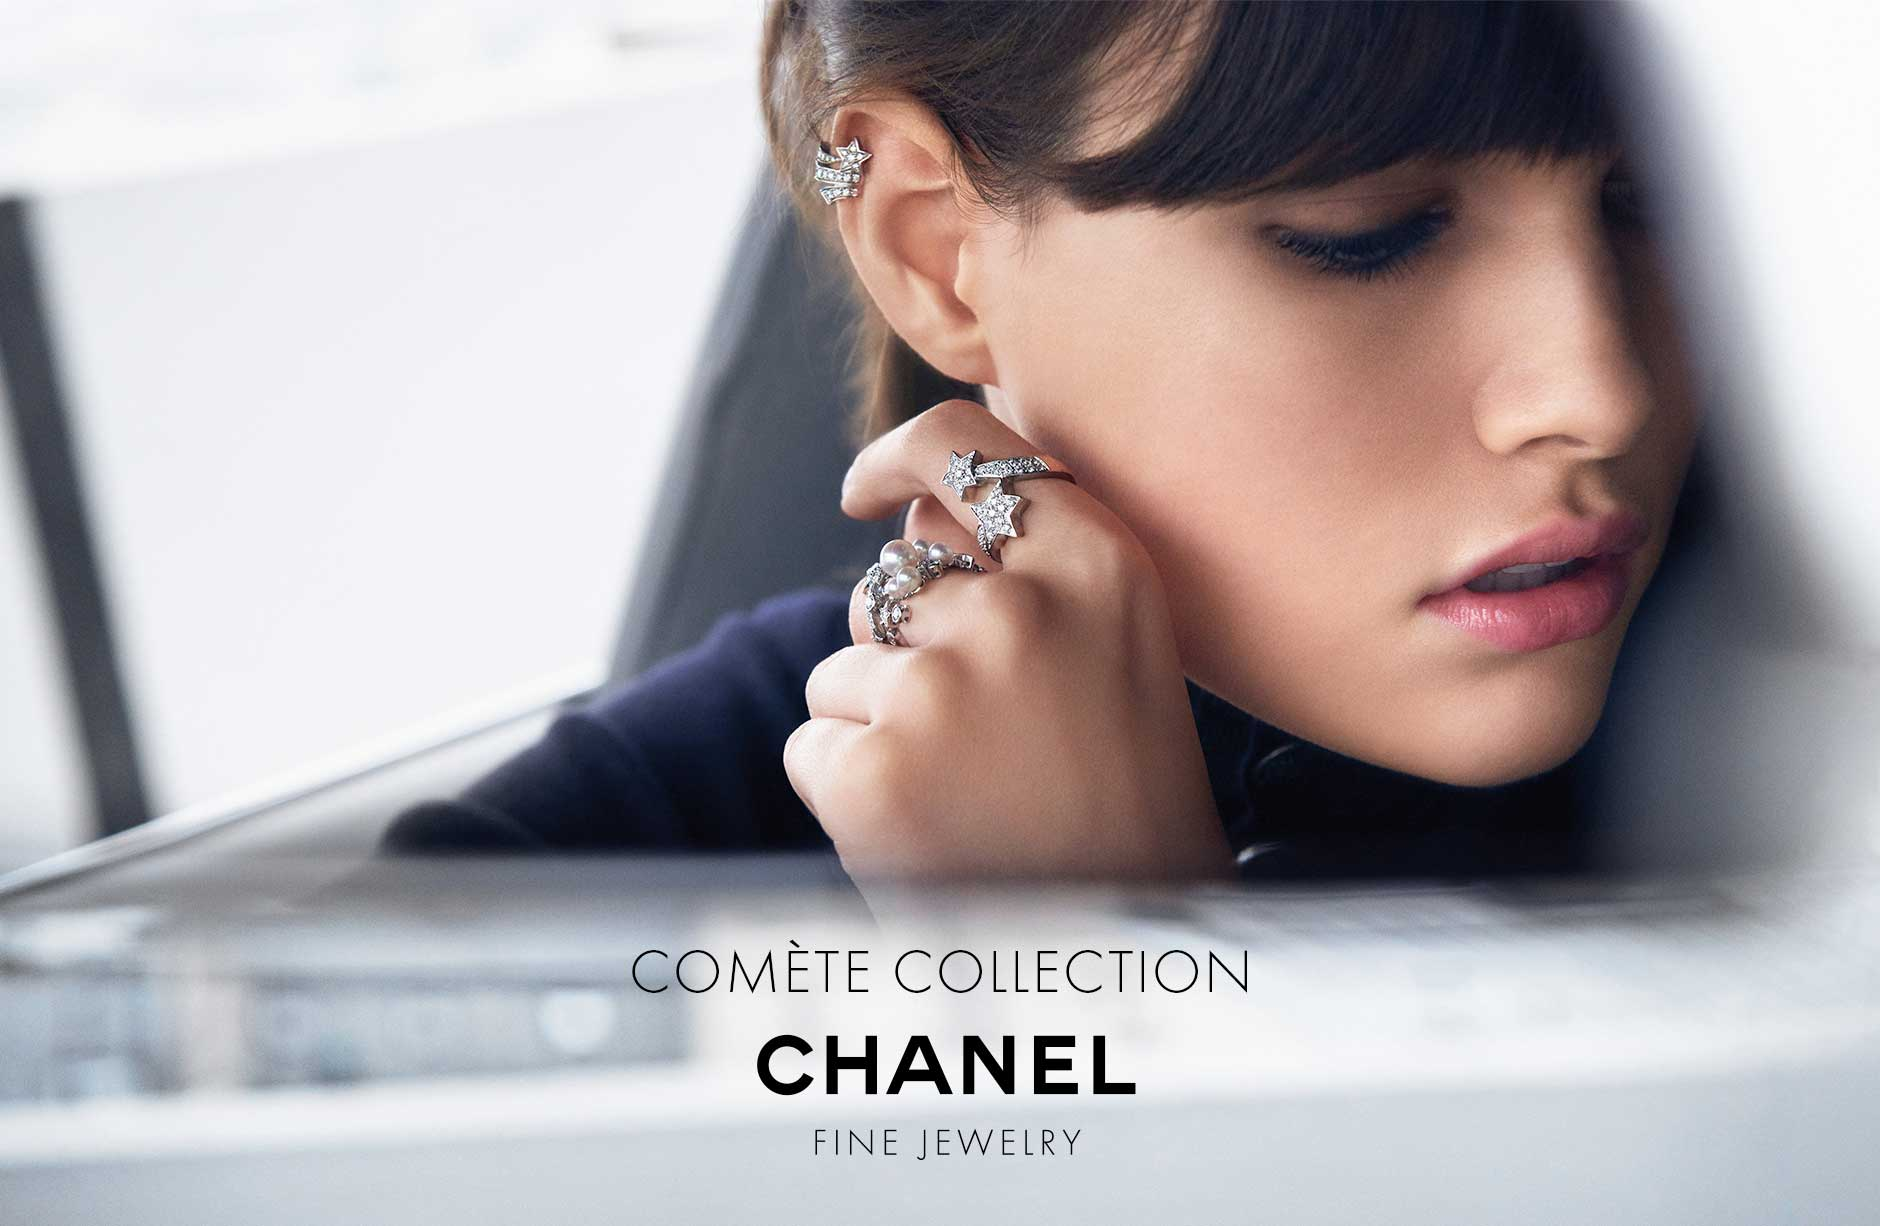 Comete Collection: Chanel - Fine Jewelry